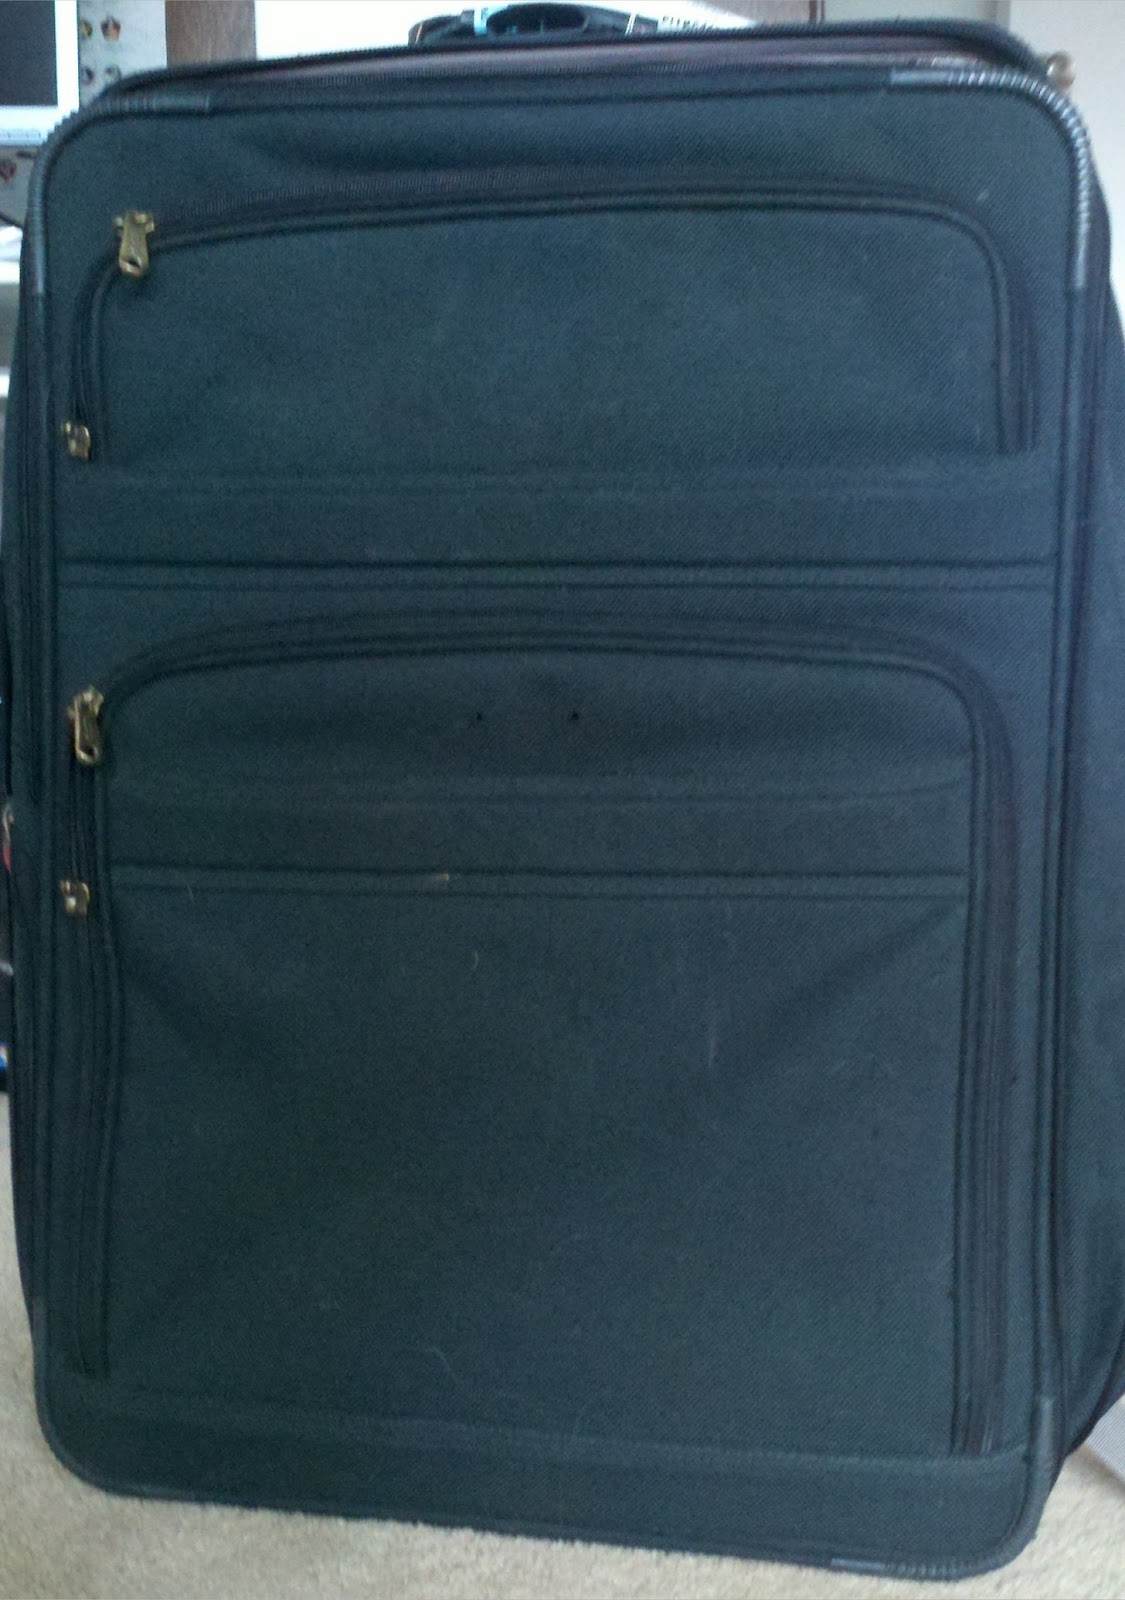 I Can Write Funny Fun With Freecycle Cat Suitcase